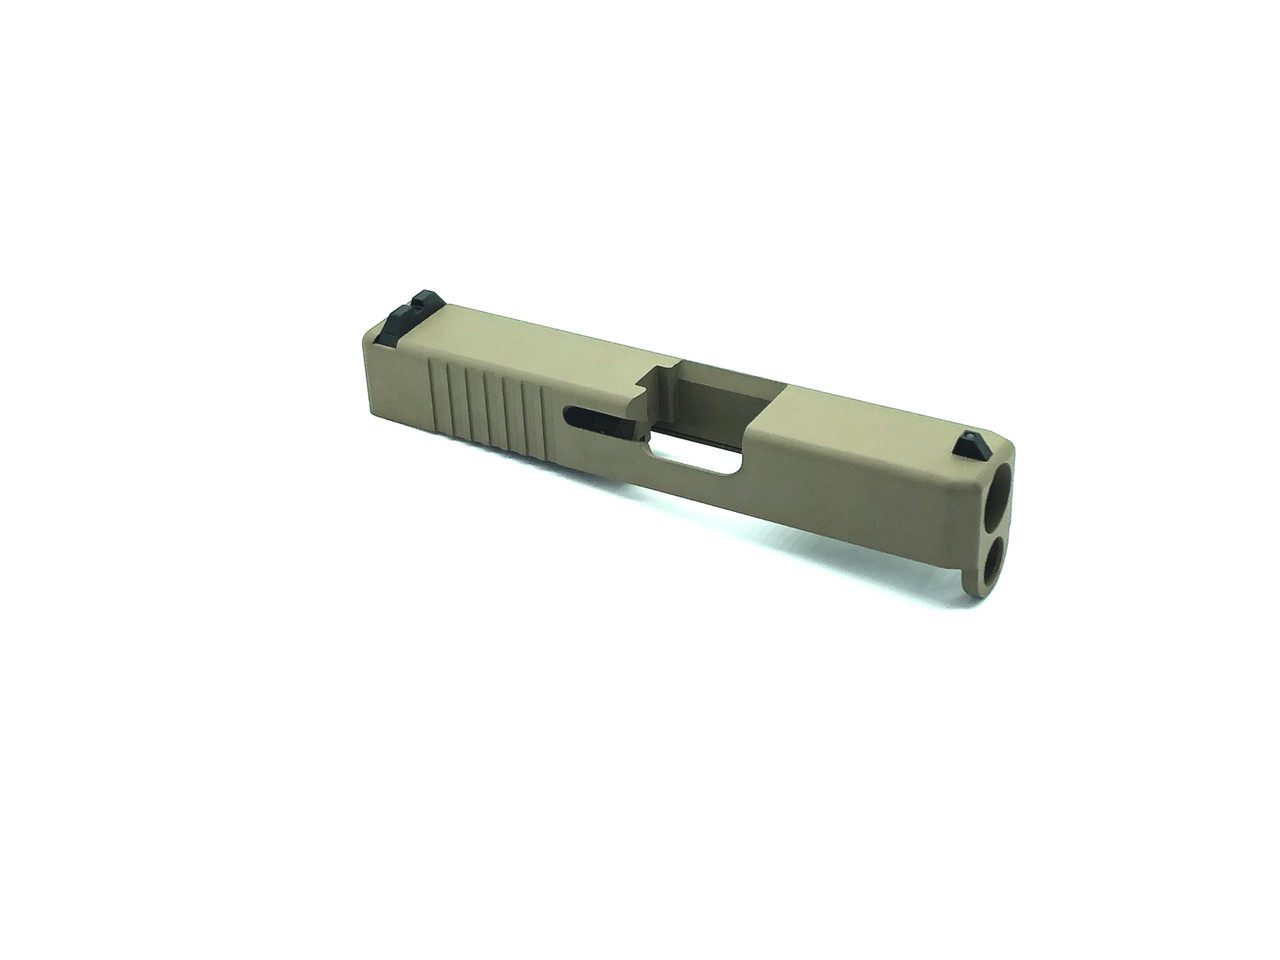 MDX Arms V1 Stripped Slides - G27 FDE